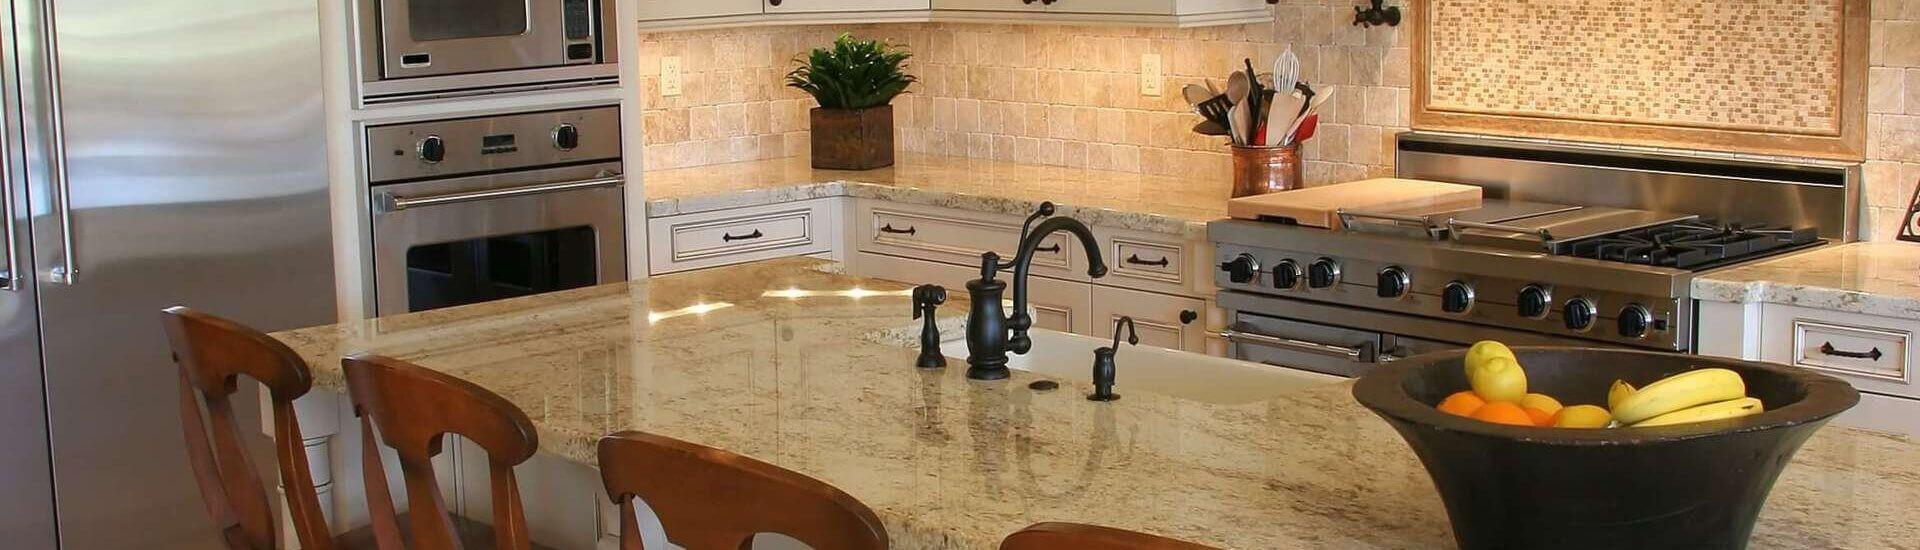 A modern, luxury kitchen.